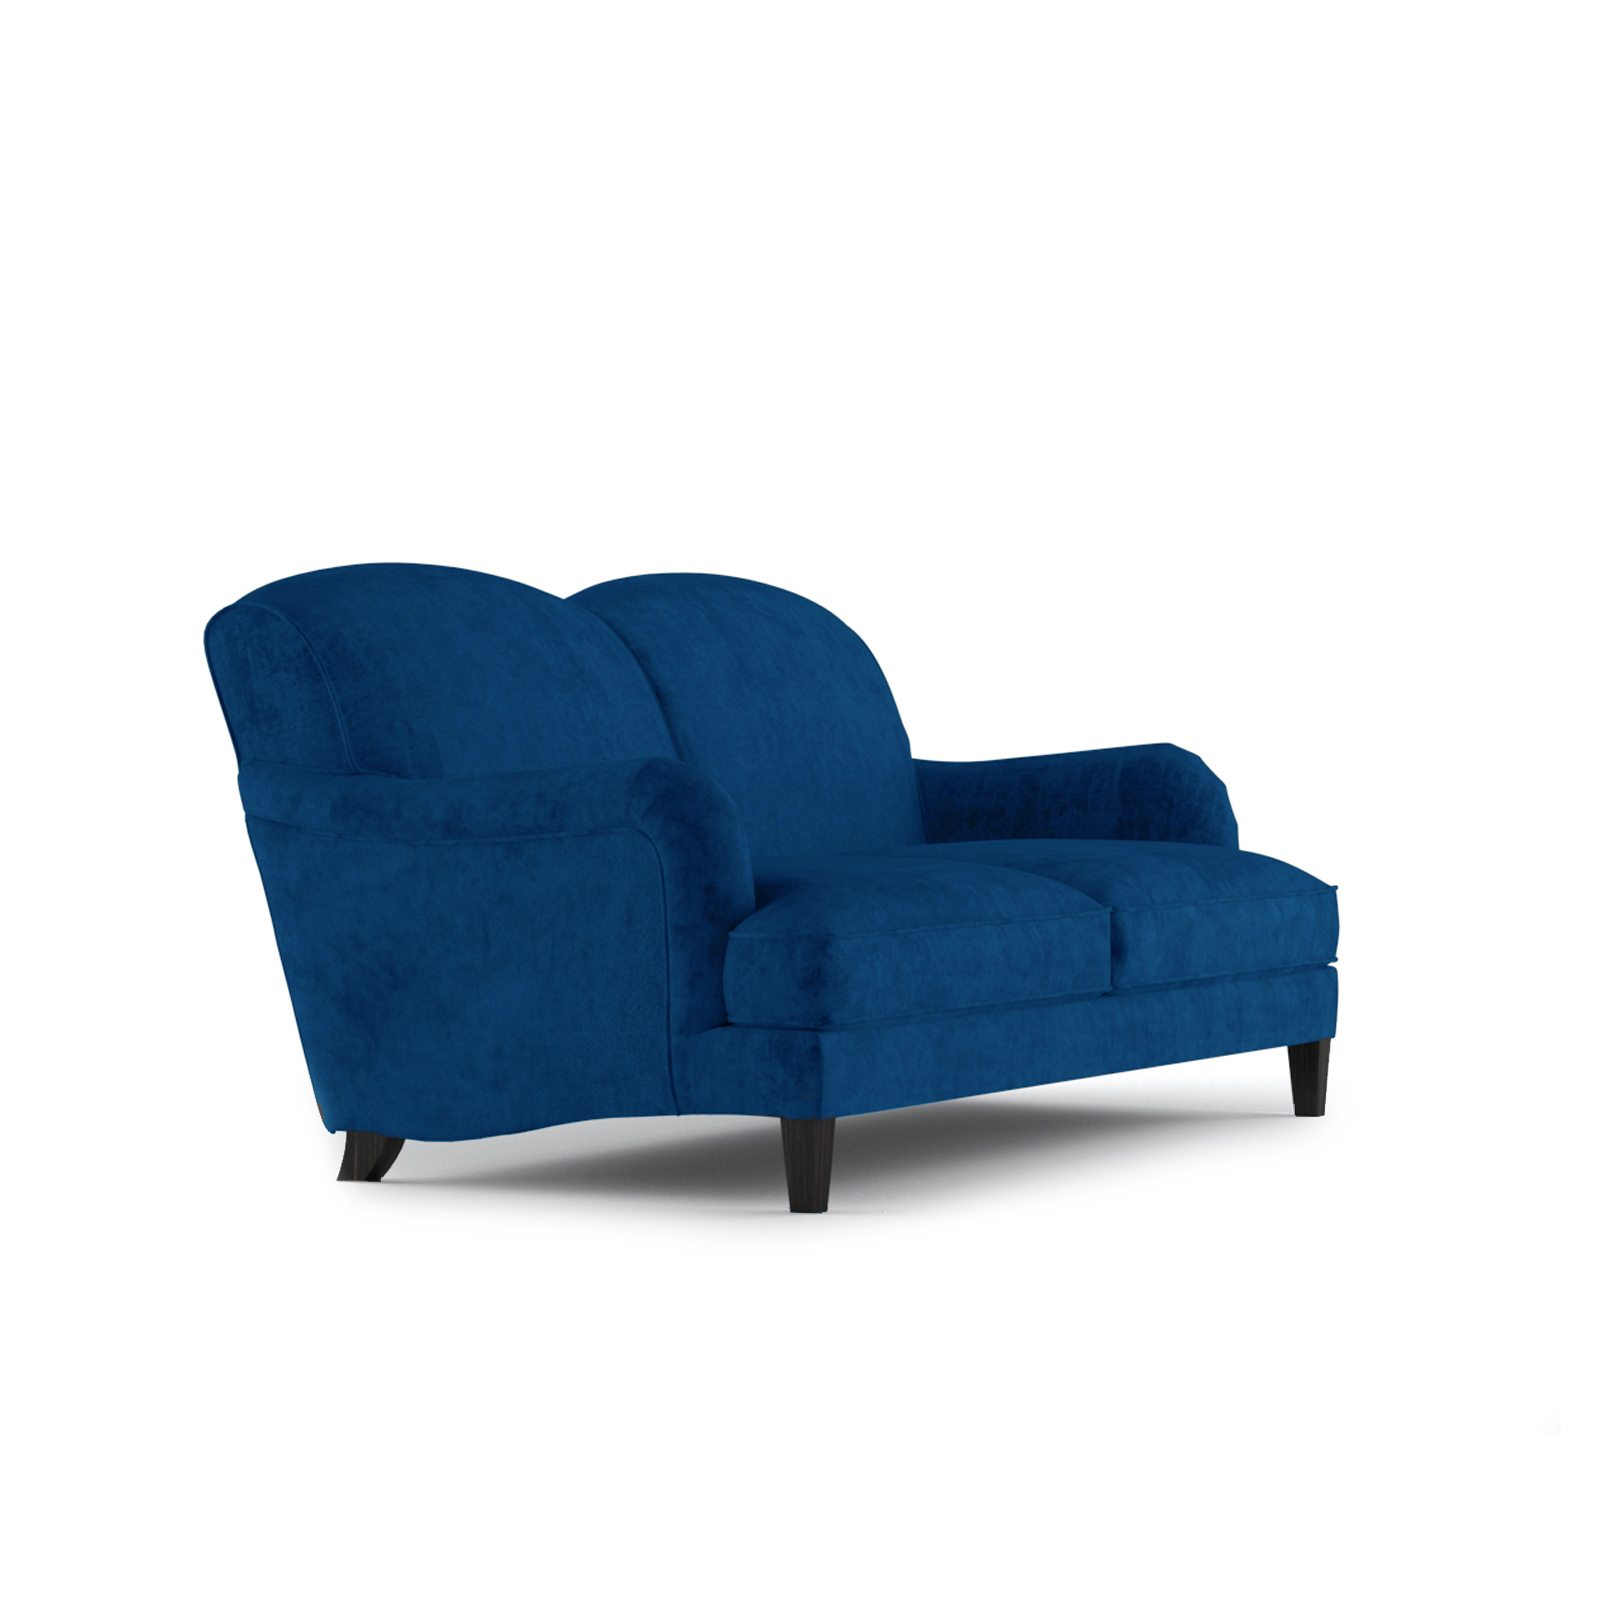 Windsor Two Seater Sofa by Bonham & Bonham Blue 03